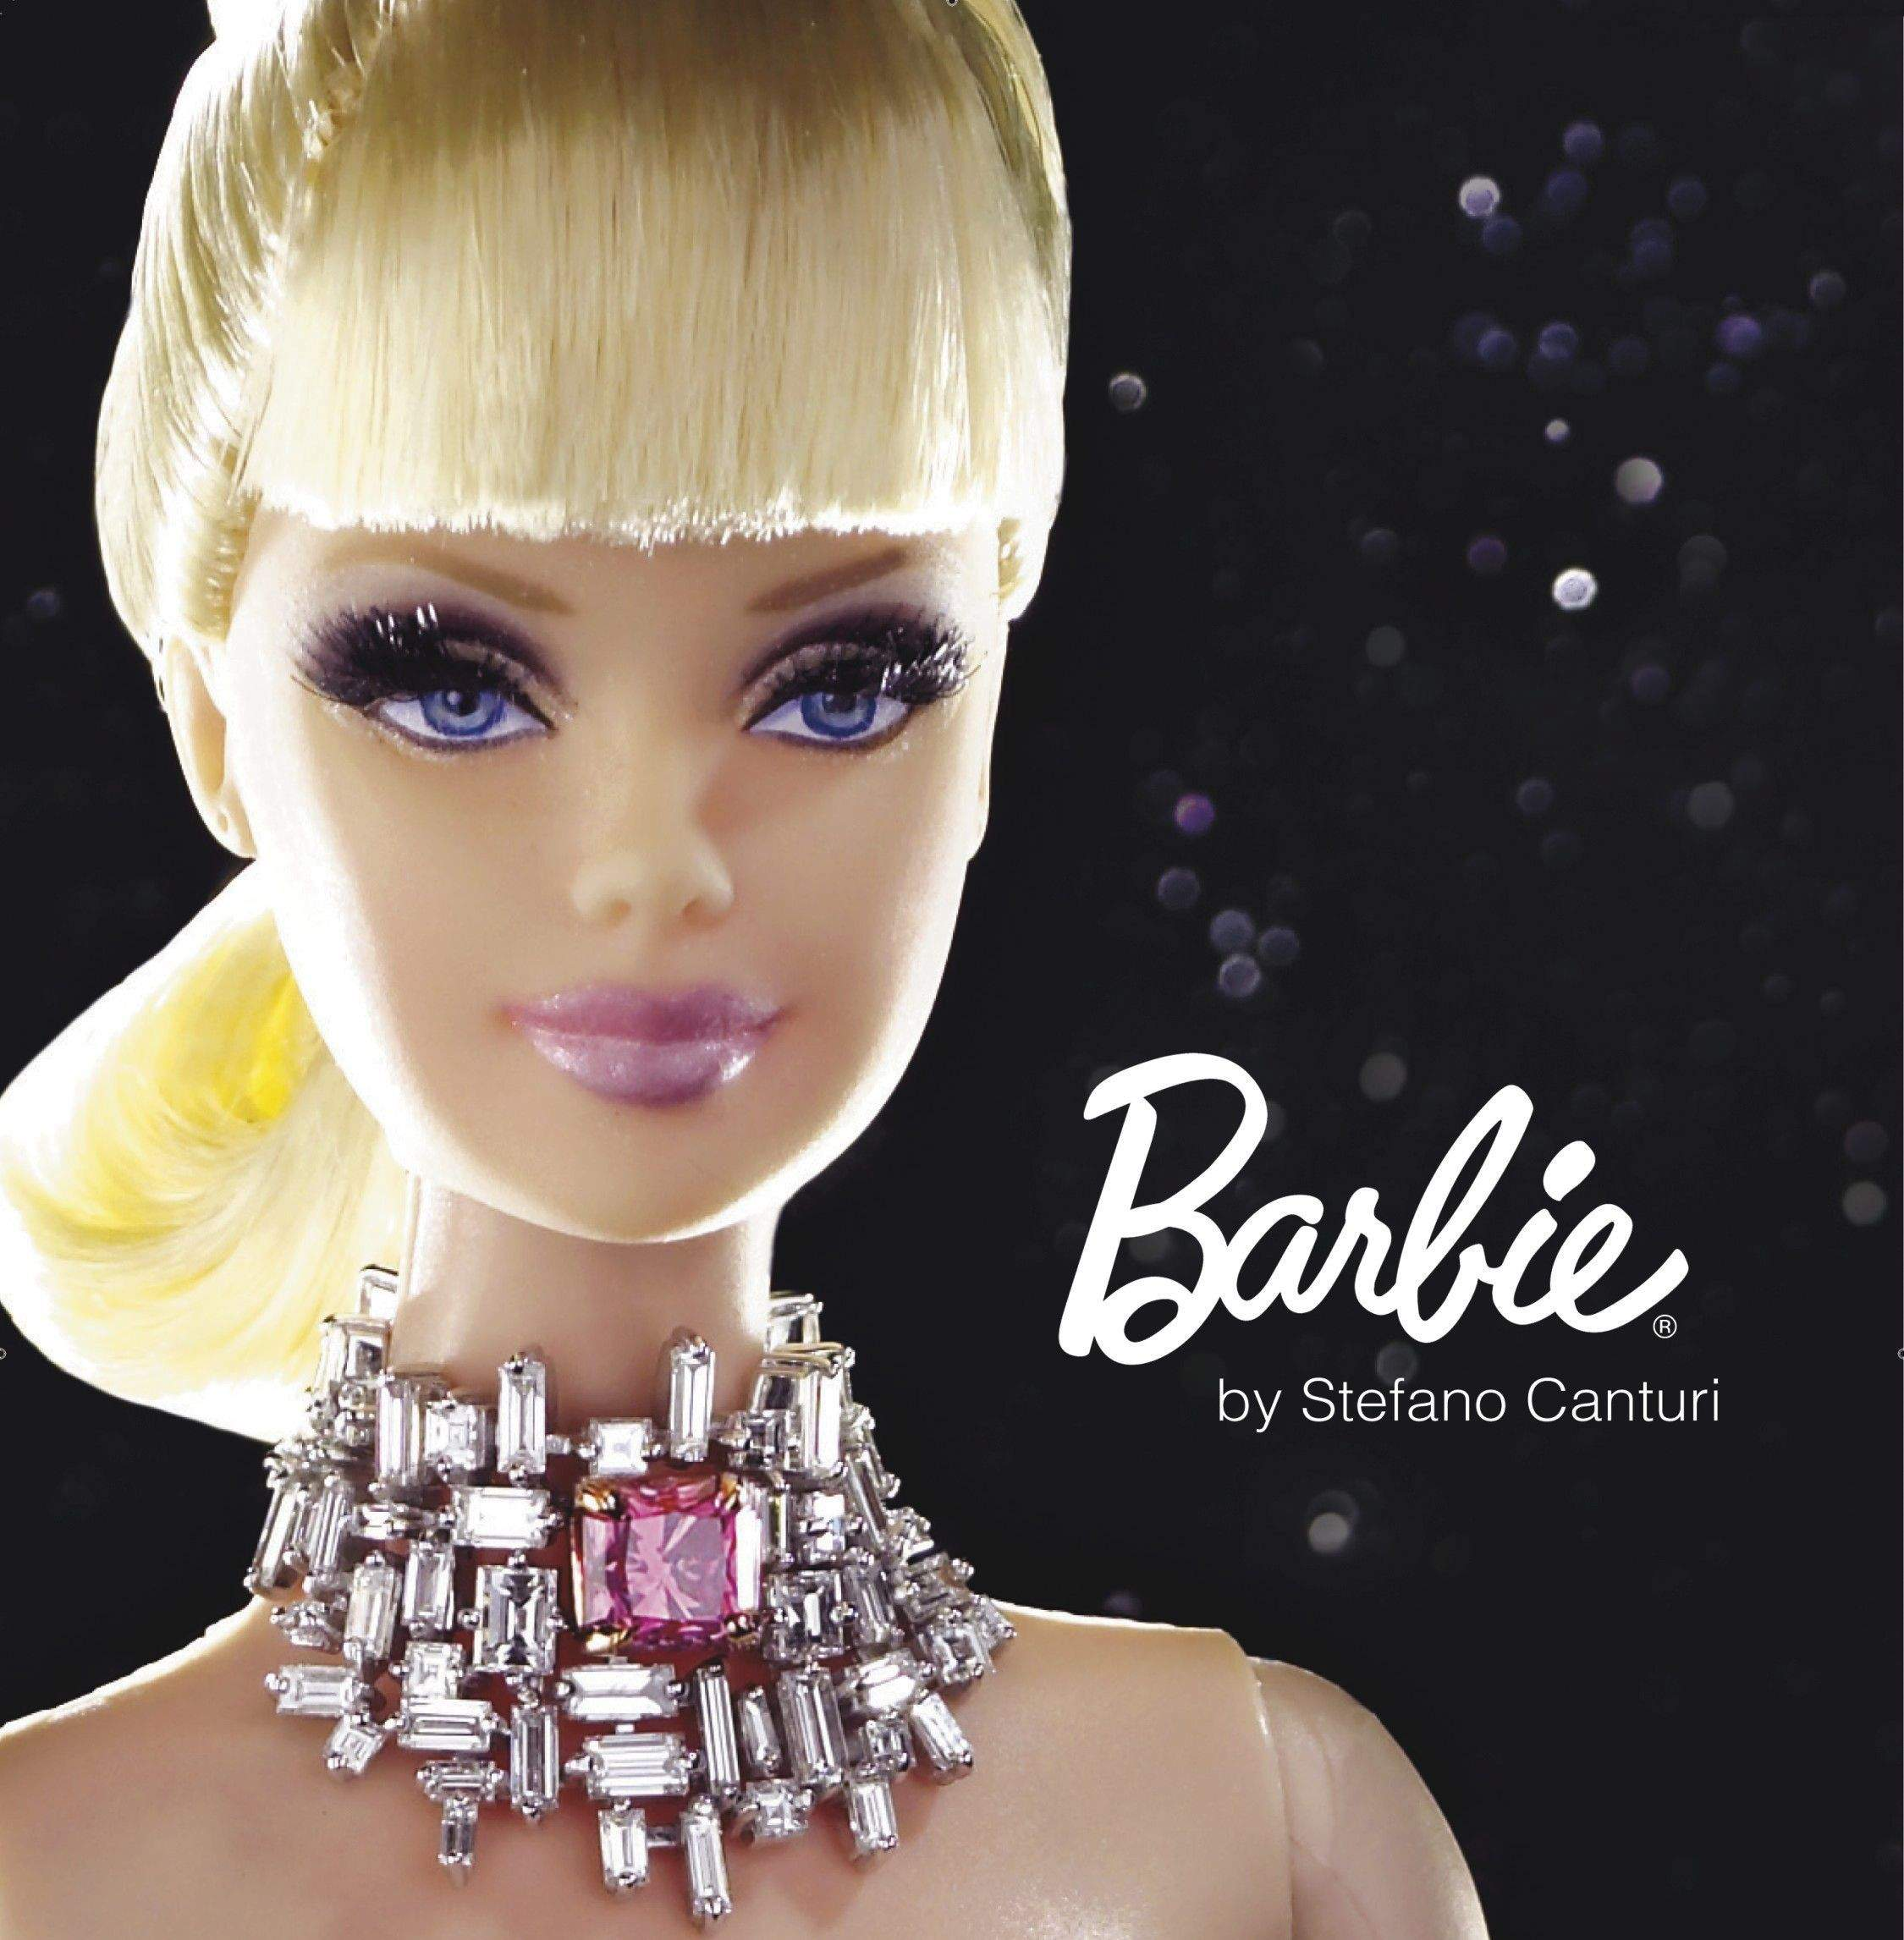 Some are out to cut blonde locks off Barbie